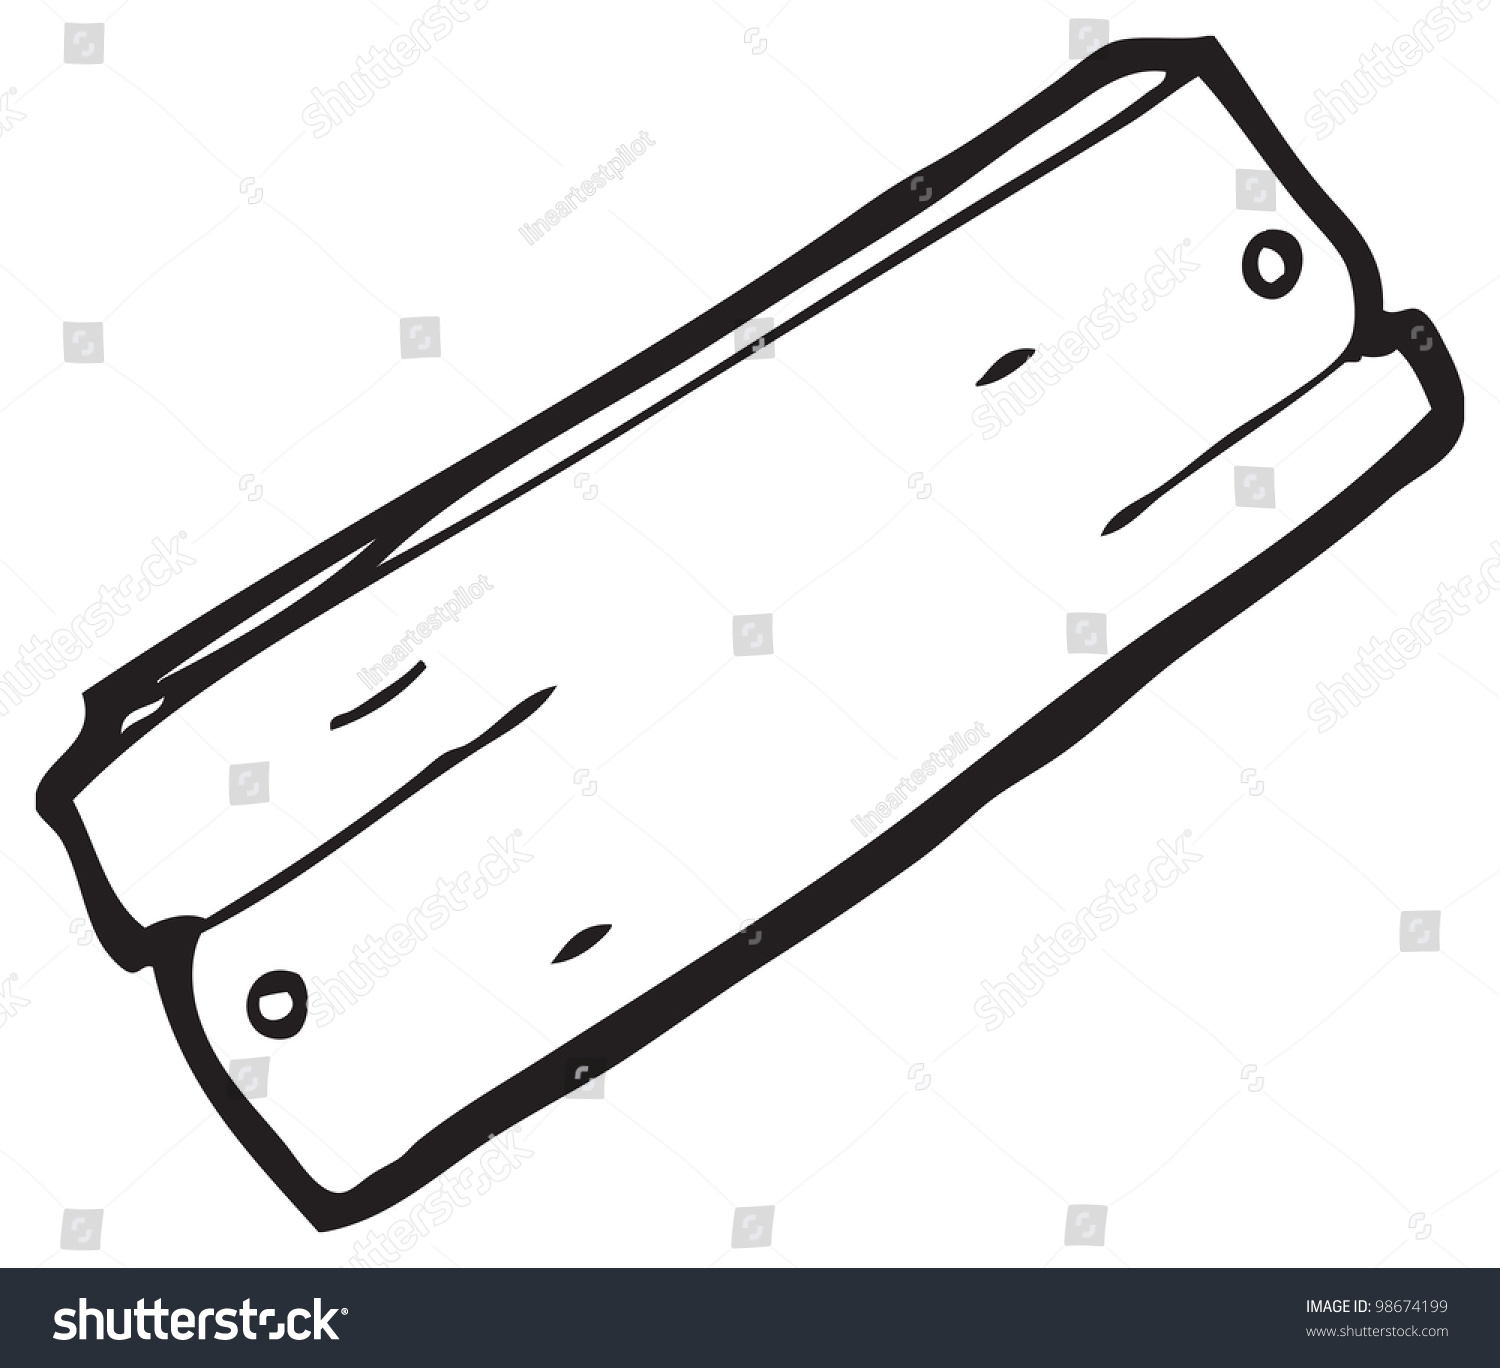 Wooden Plank Cartoon ~ Cartoon wooden plank stock illustration